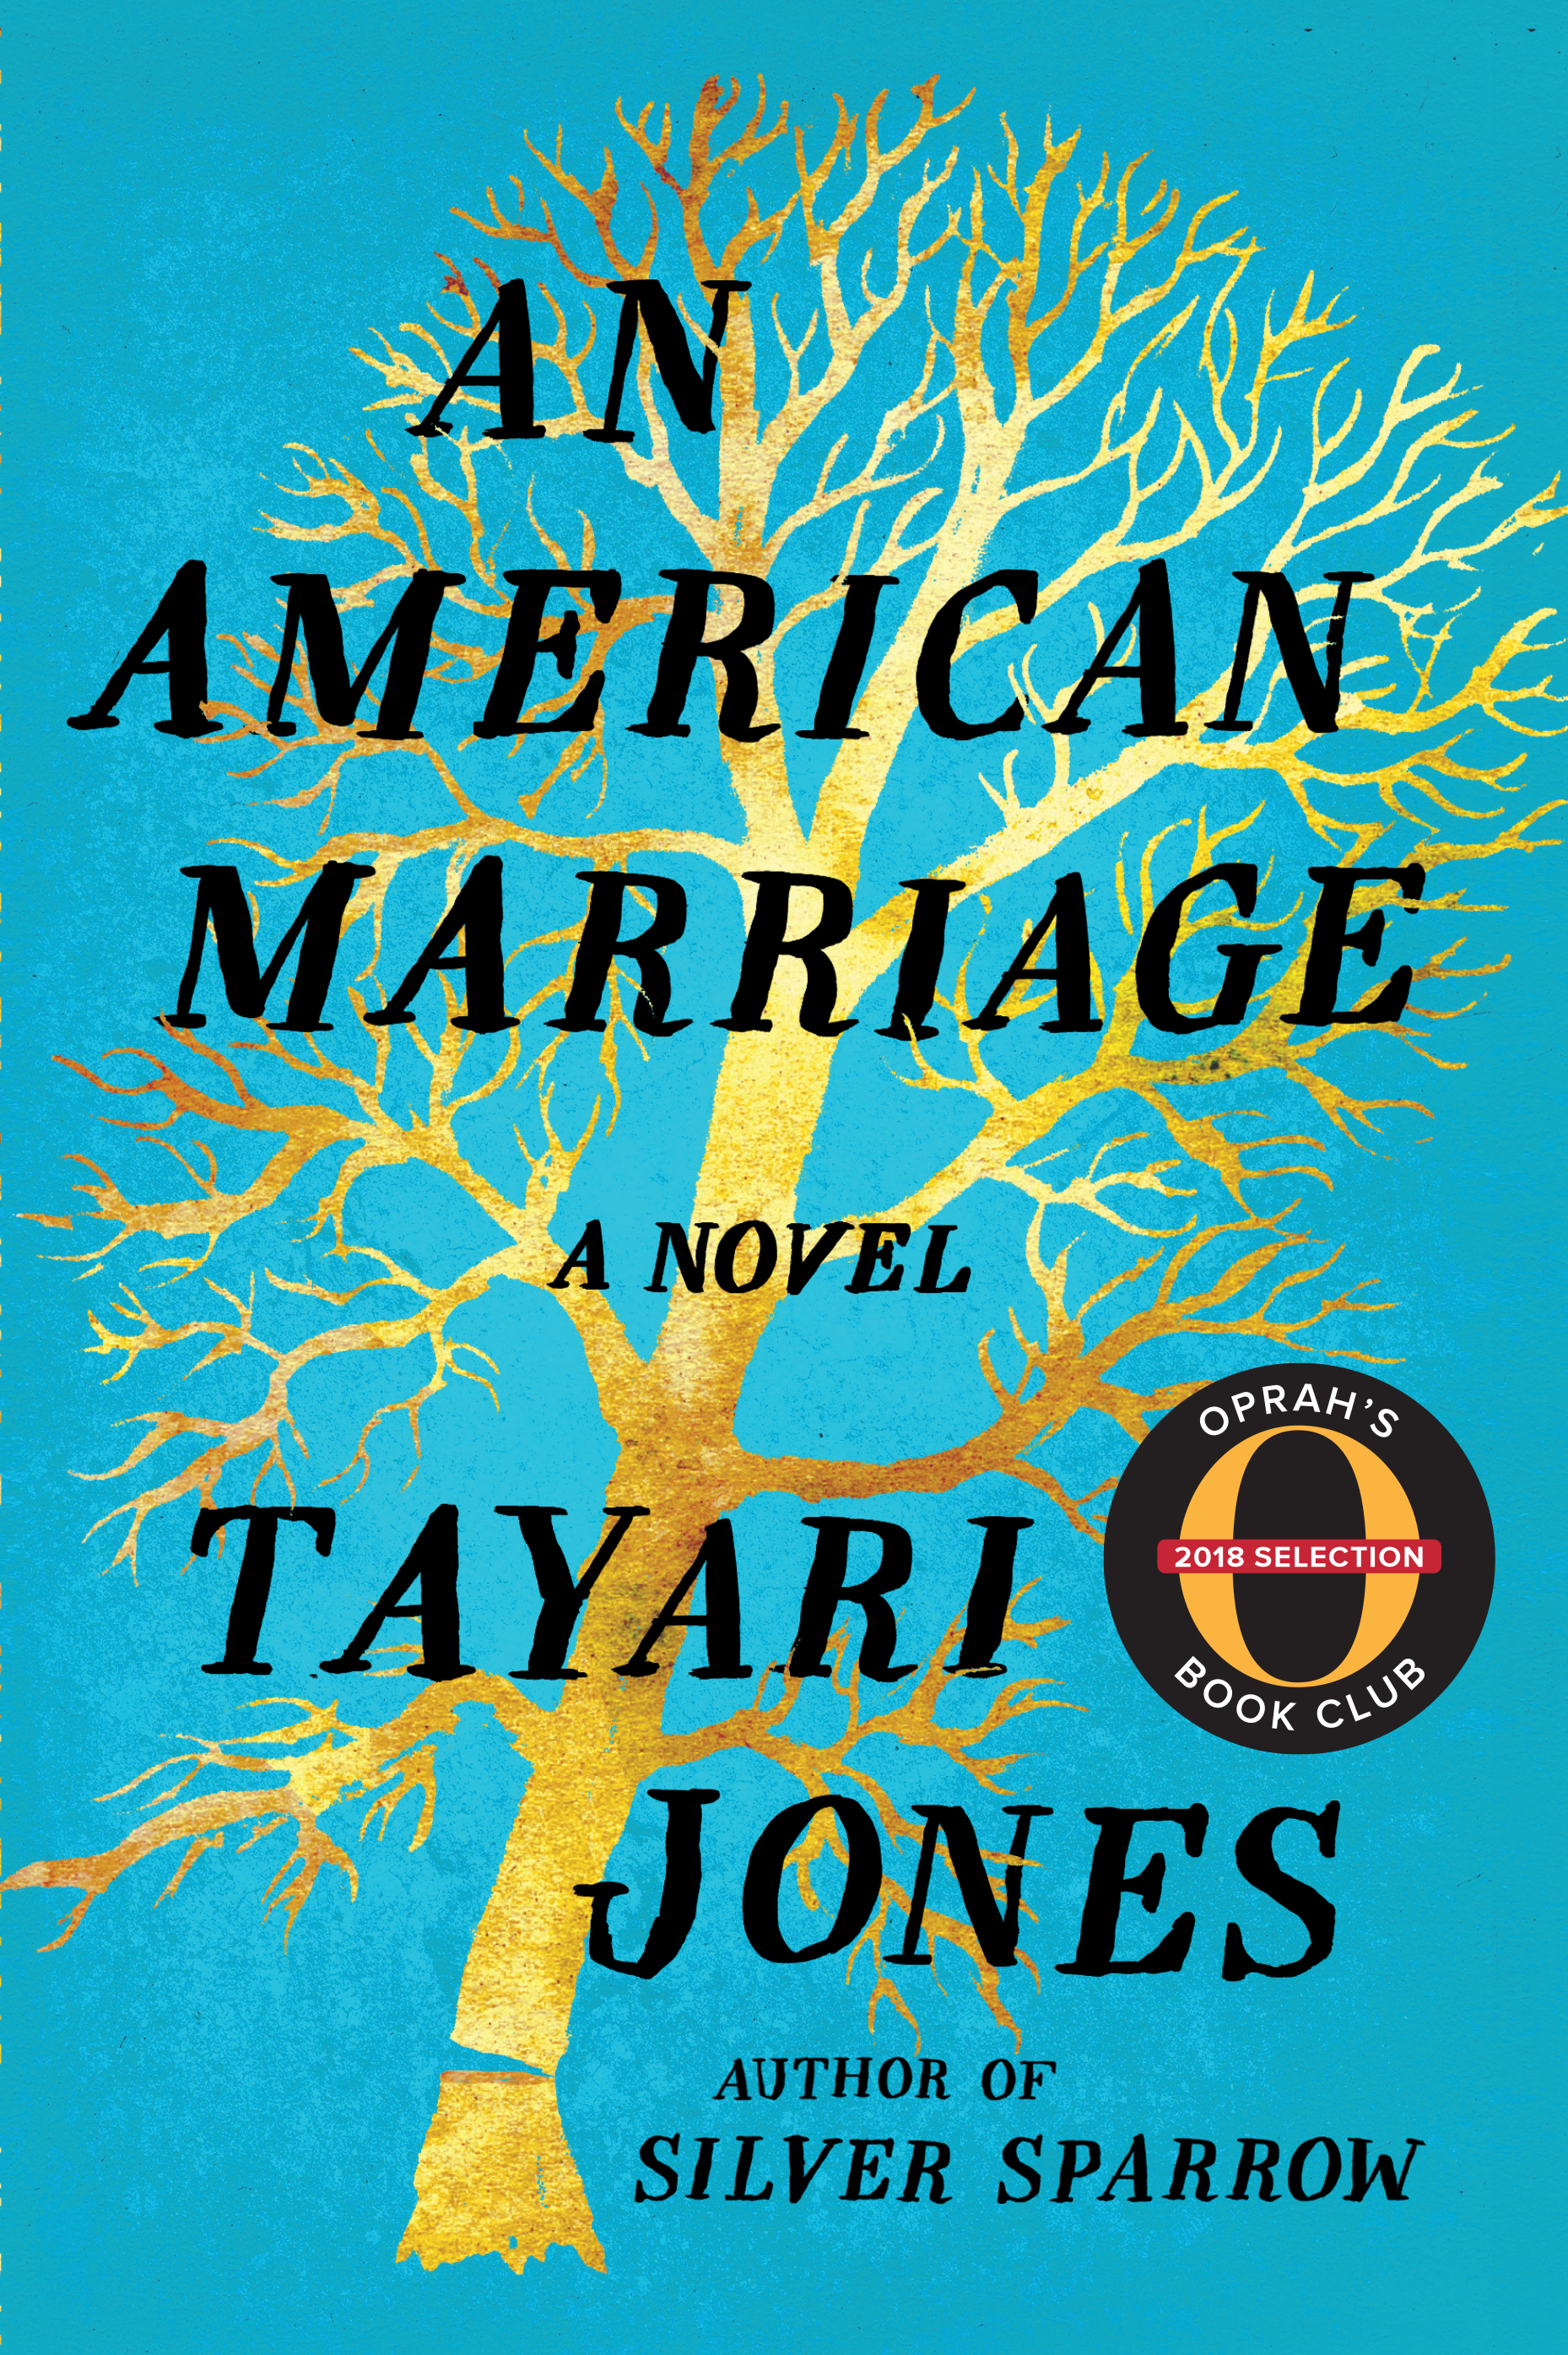 The cover of the book An American Marriage